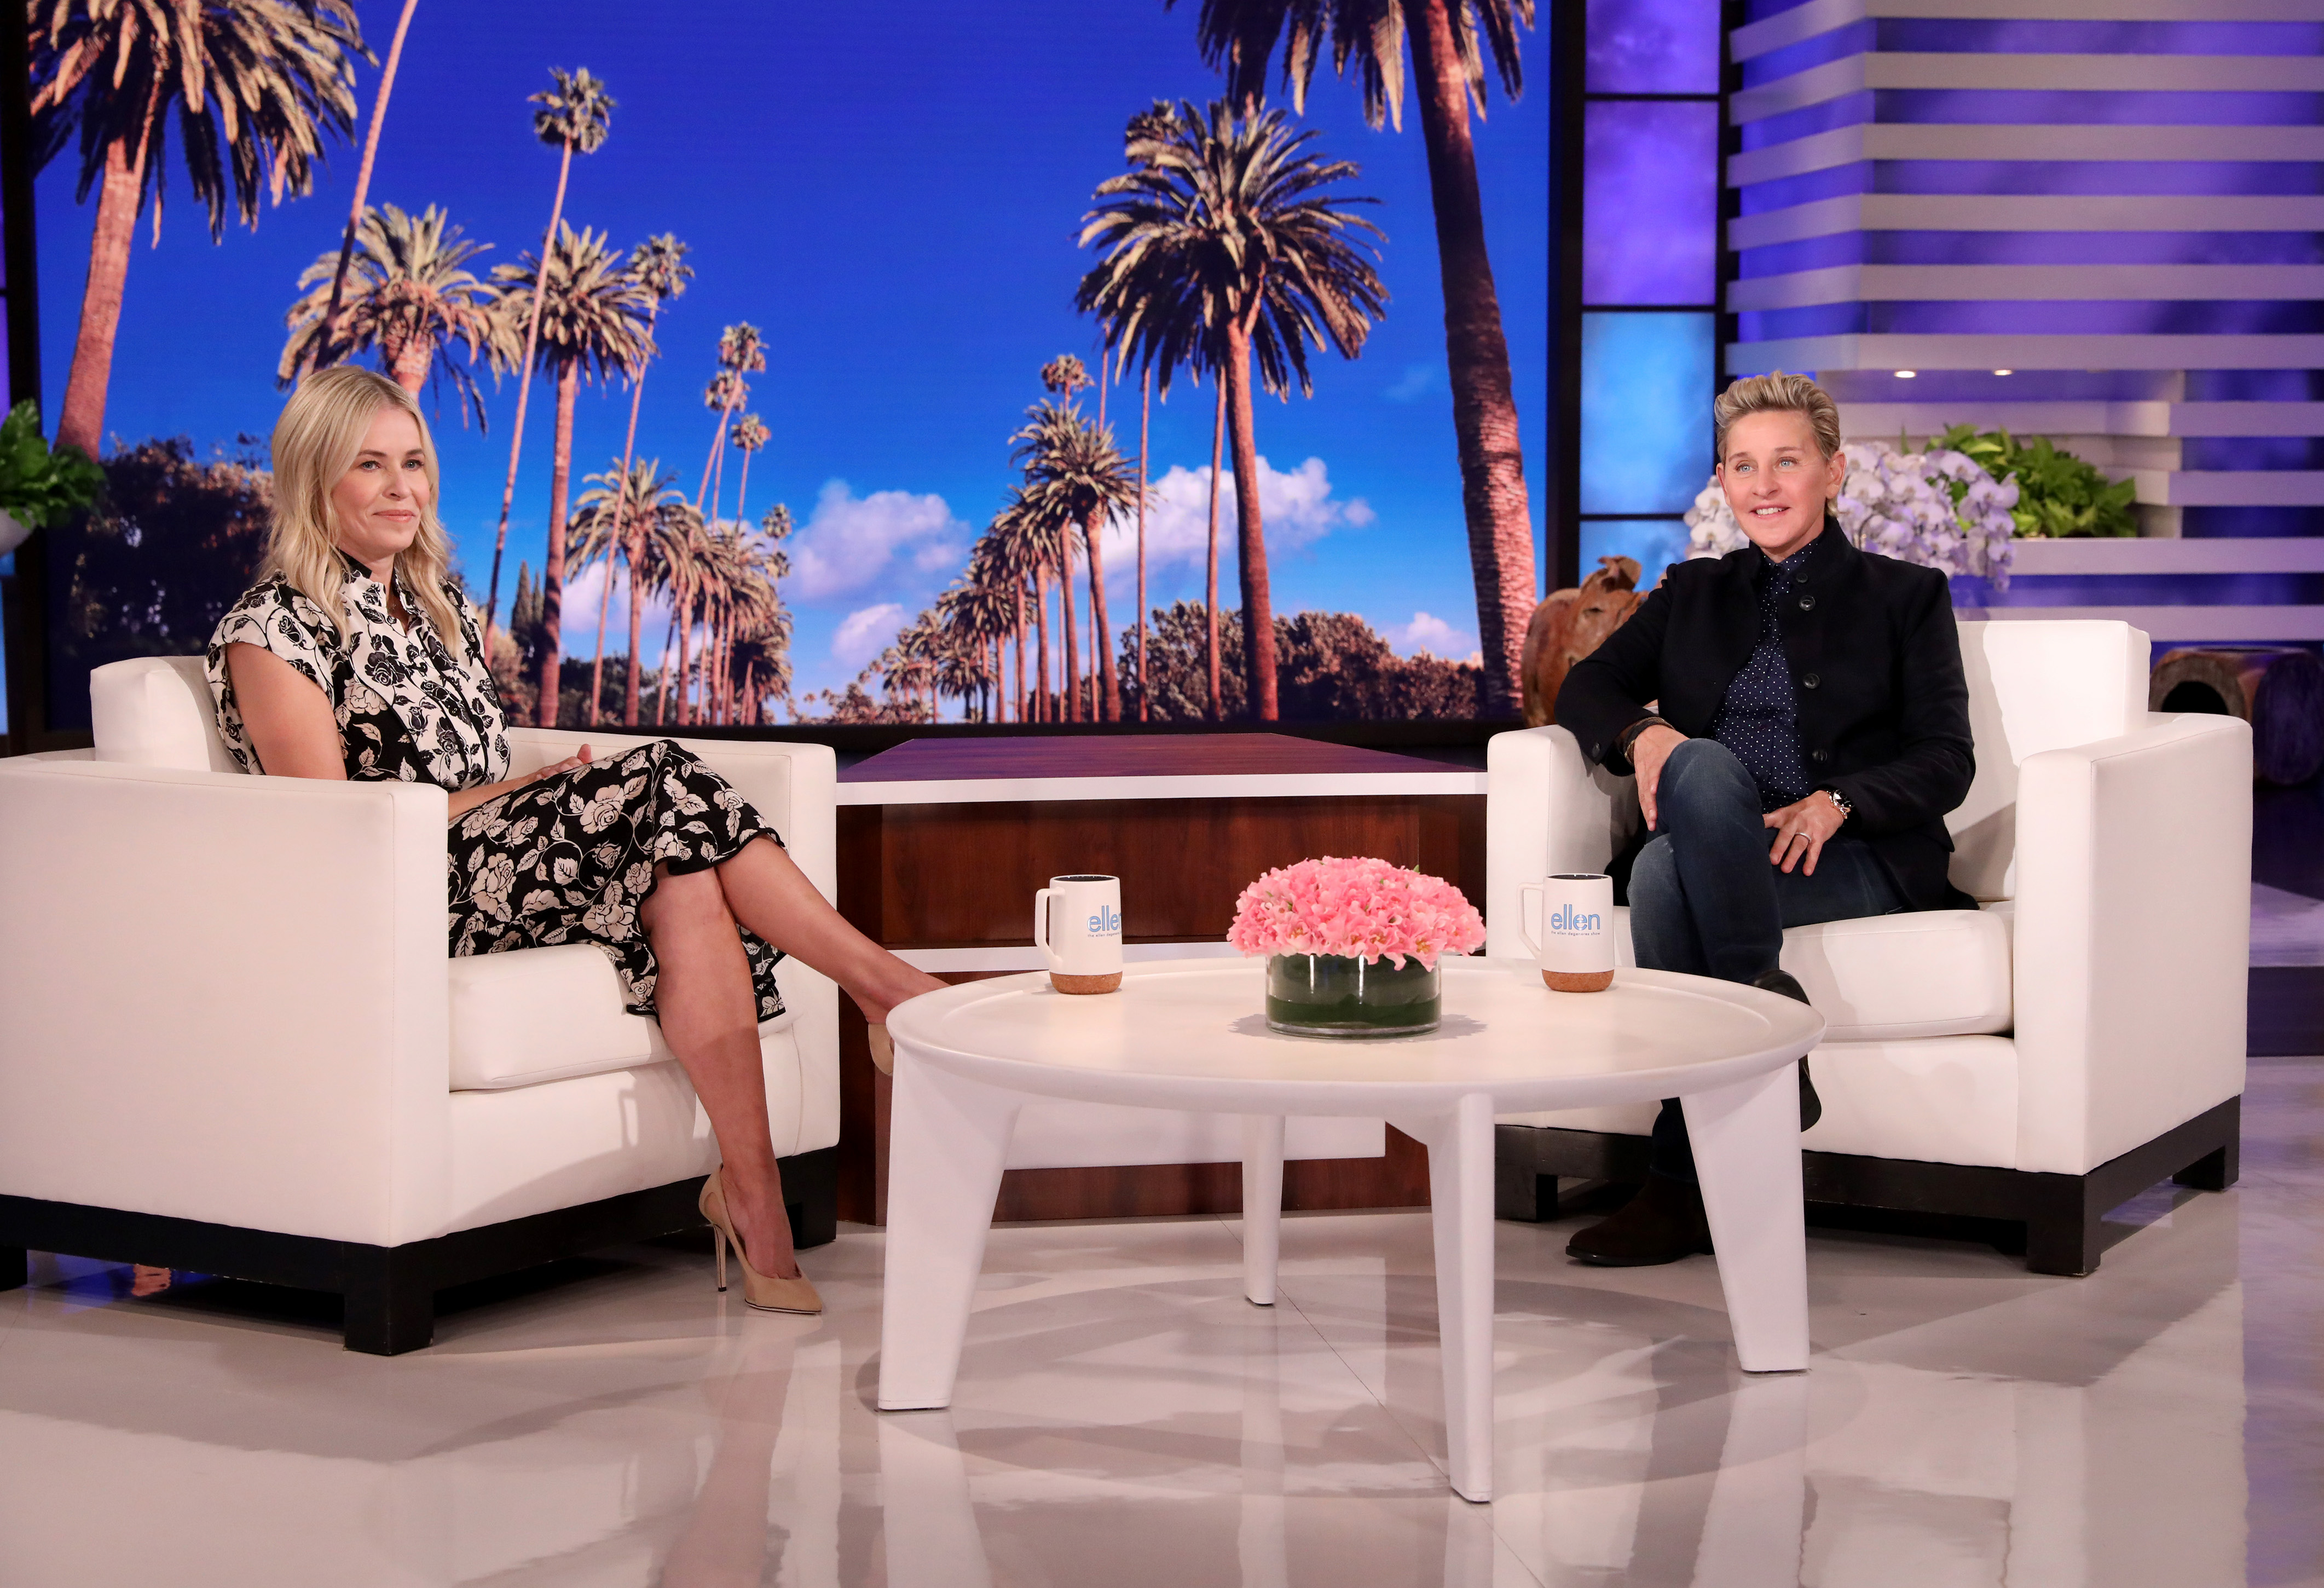 Chelsea Handler Talks Dating During The Pandemic, Reveals How A Recent Get Together With A Guy Went Very Wrong